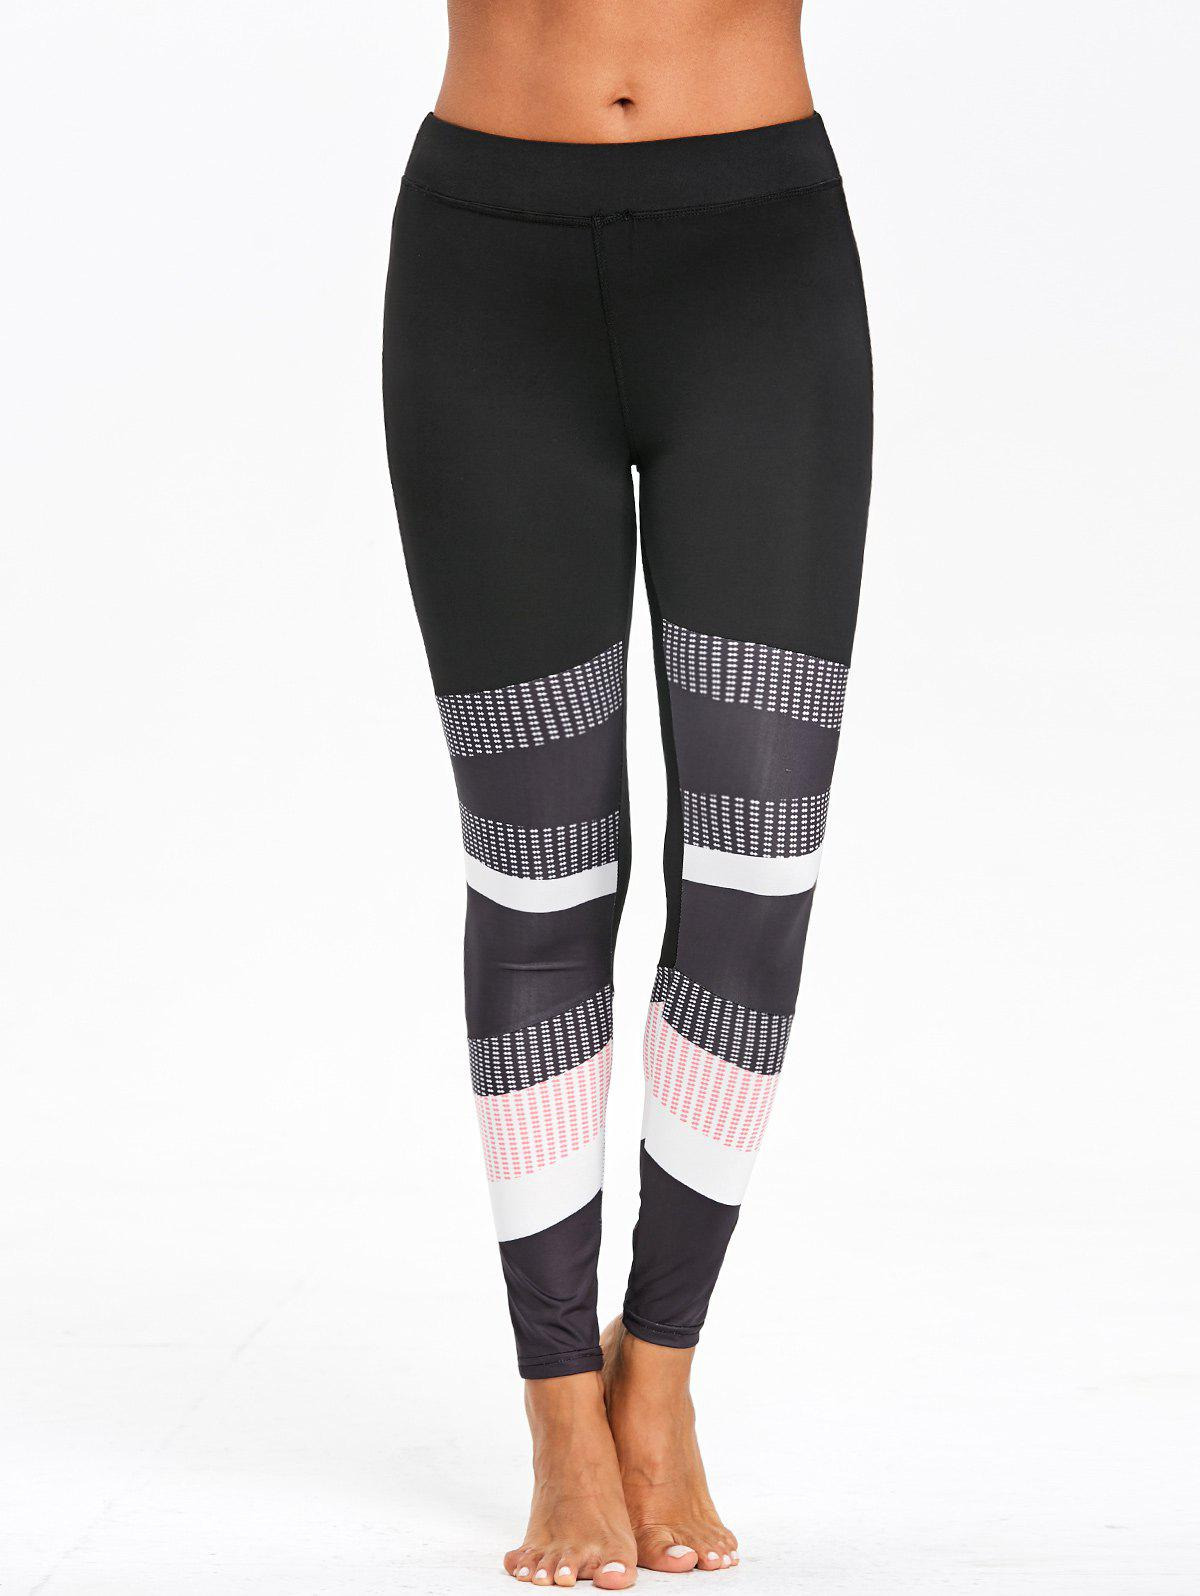 Skinny Graphic Color Block Leggings - COLORMIX XL